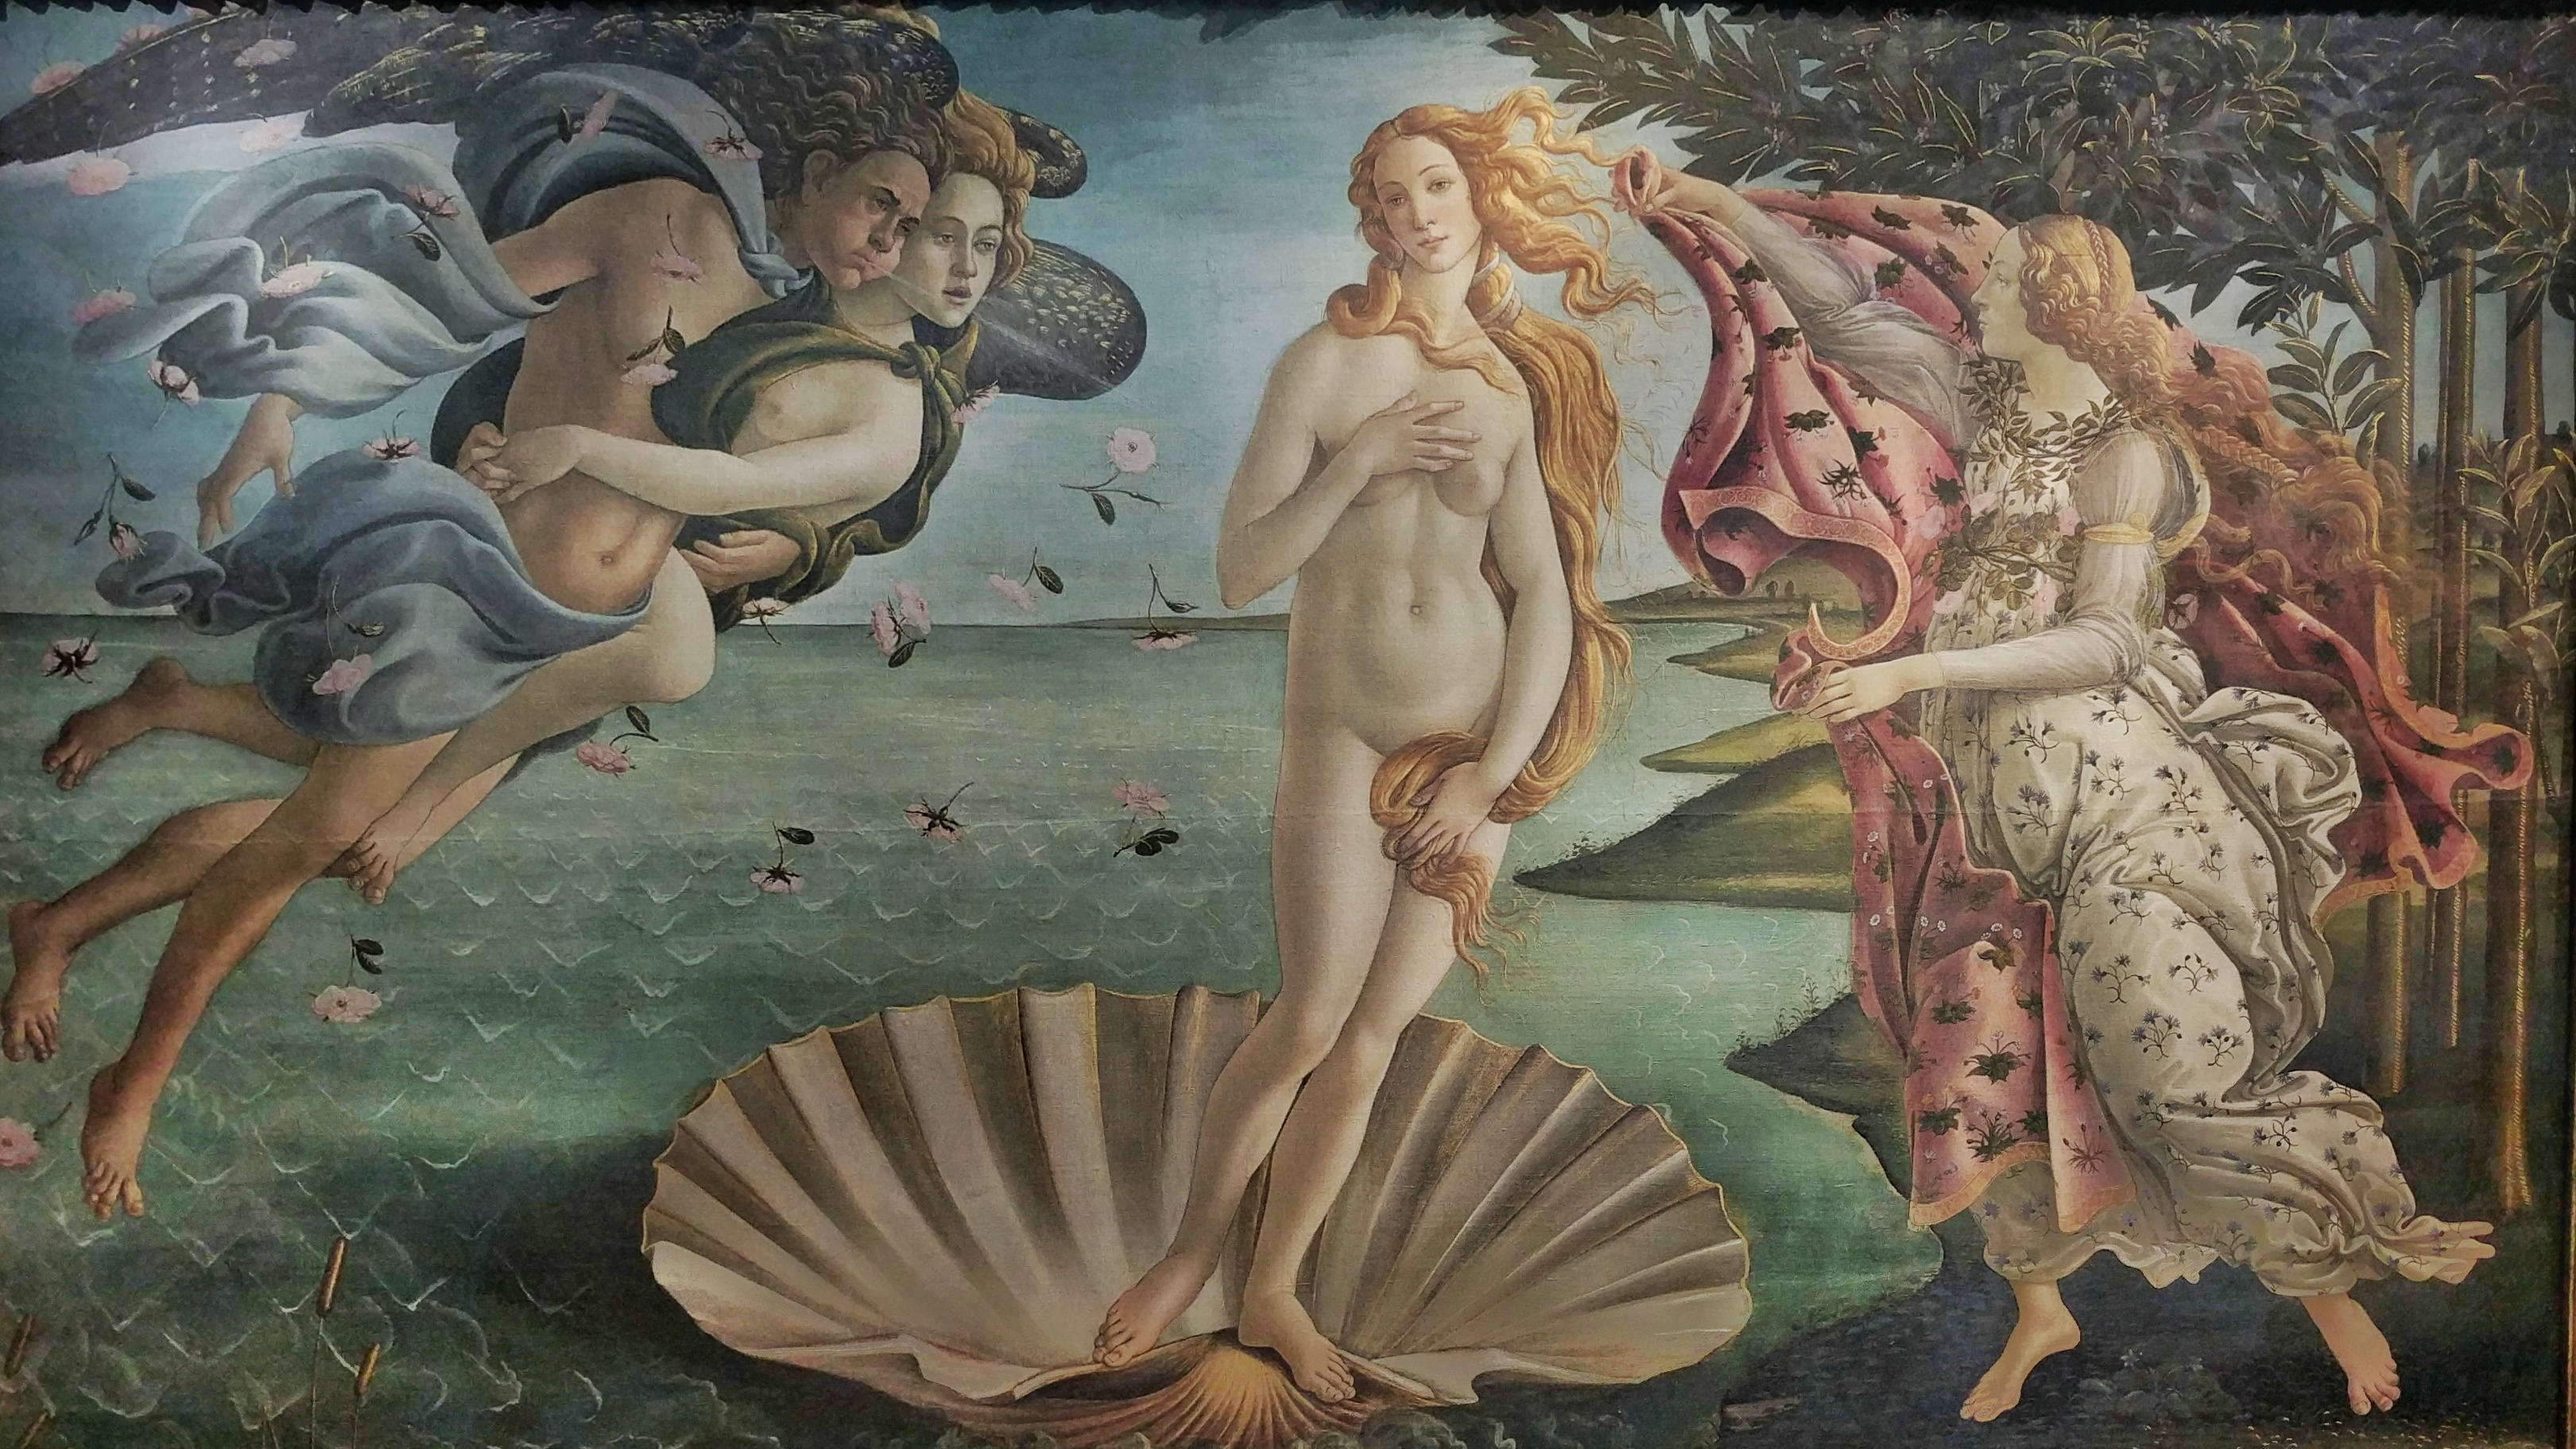 Thoughts on The Birth of Venus by Sandro Bottecelli